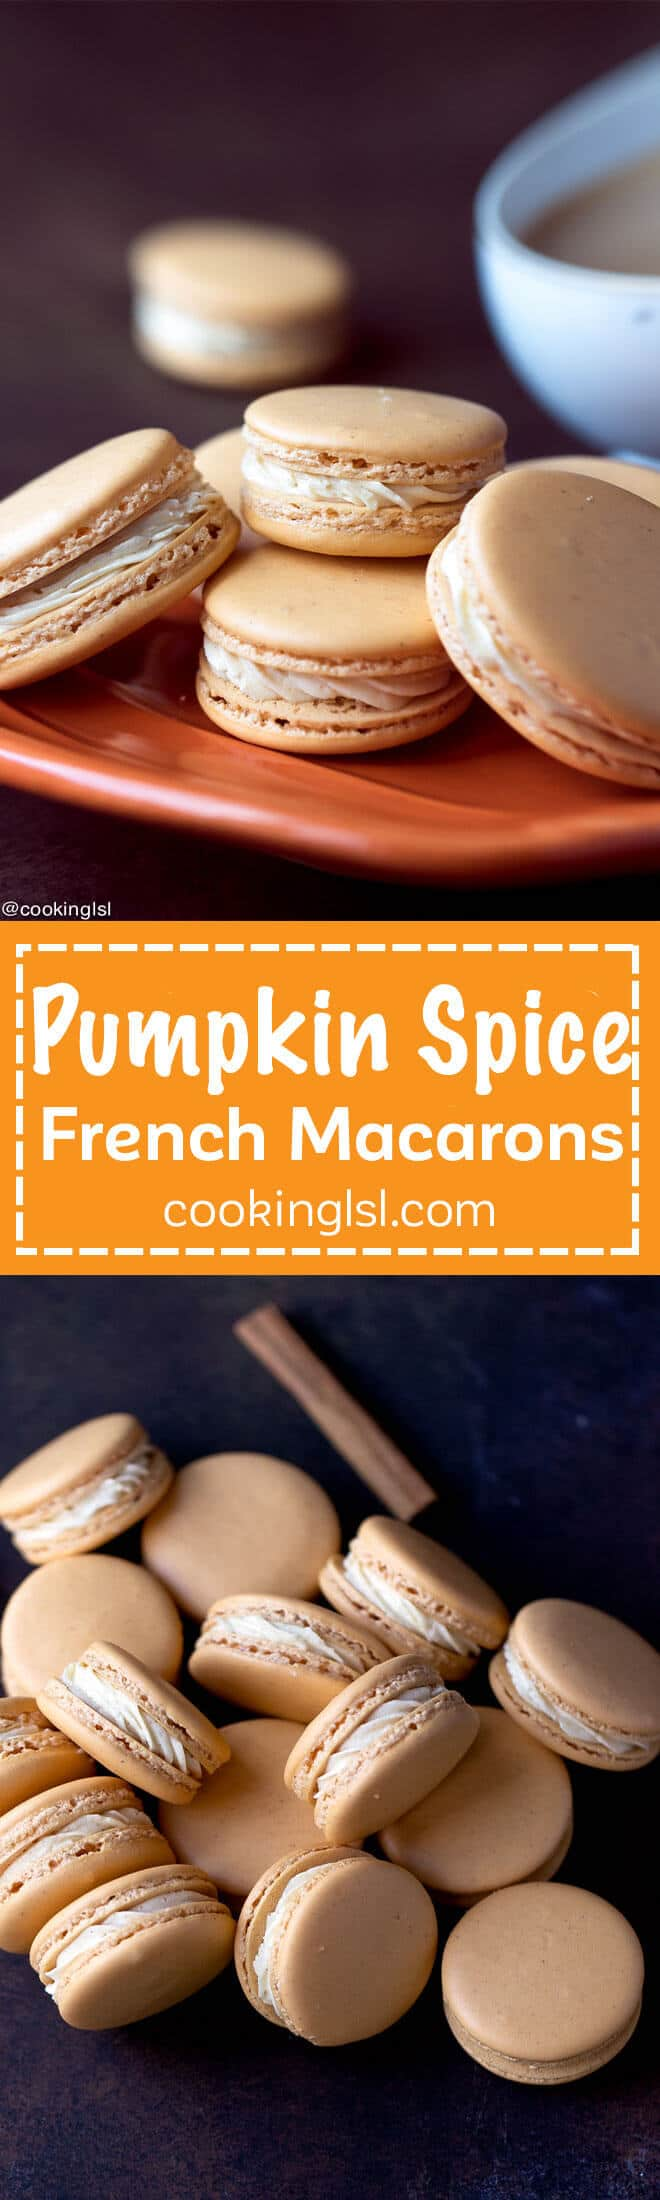 Pumpkin Spice Macarons Recipe - sweet, chewy, full of wonderful flavors, perfect for fall!